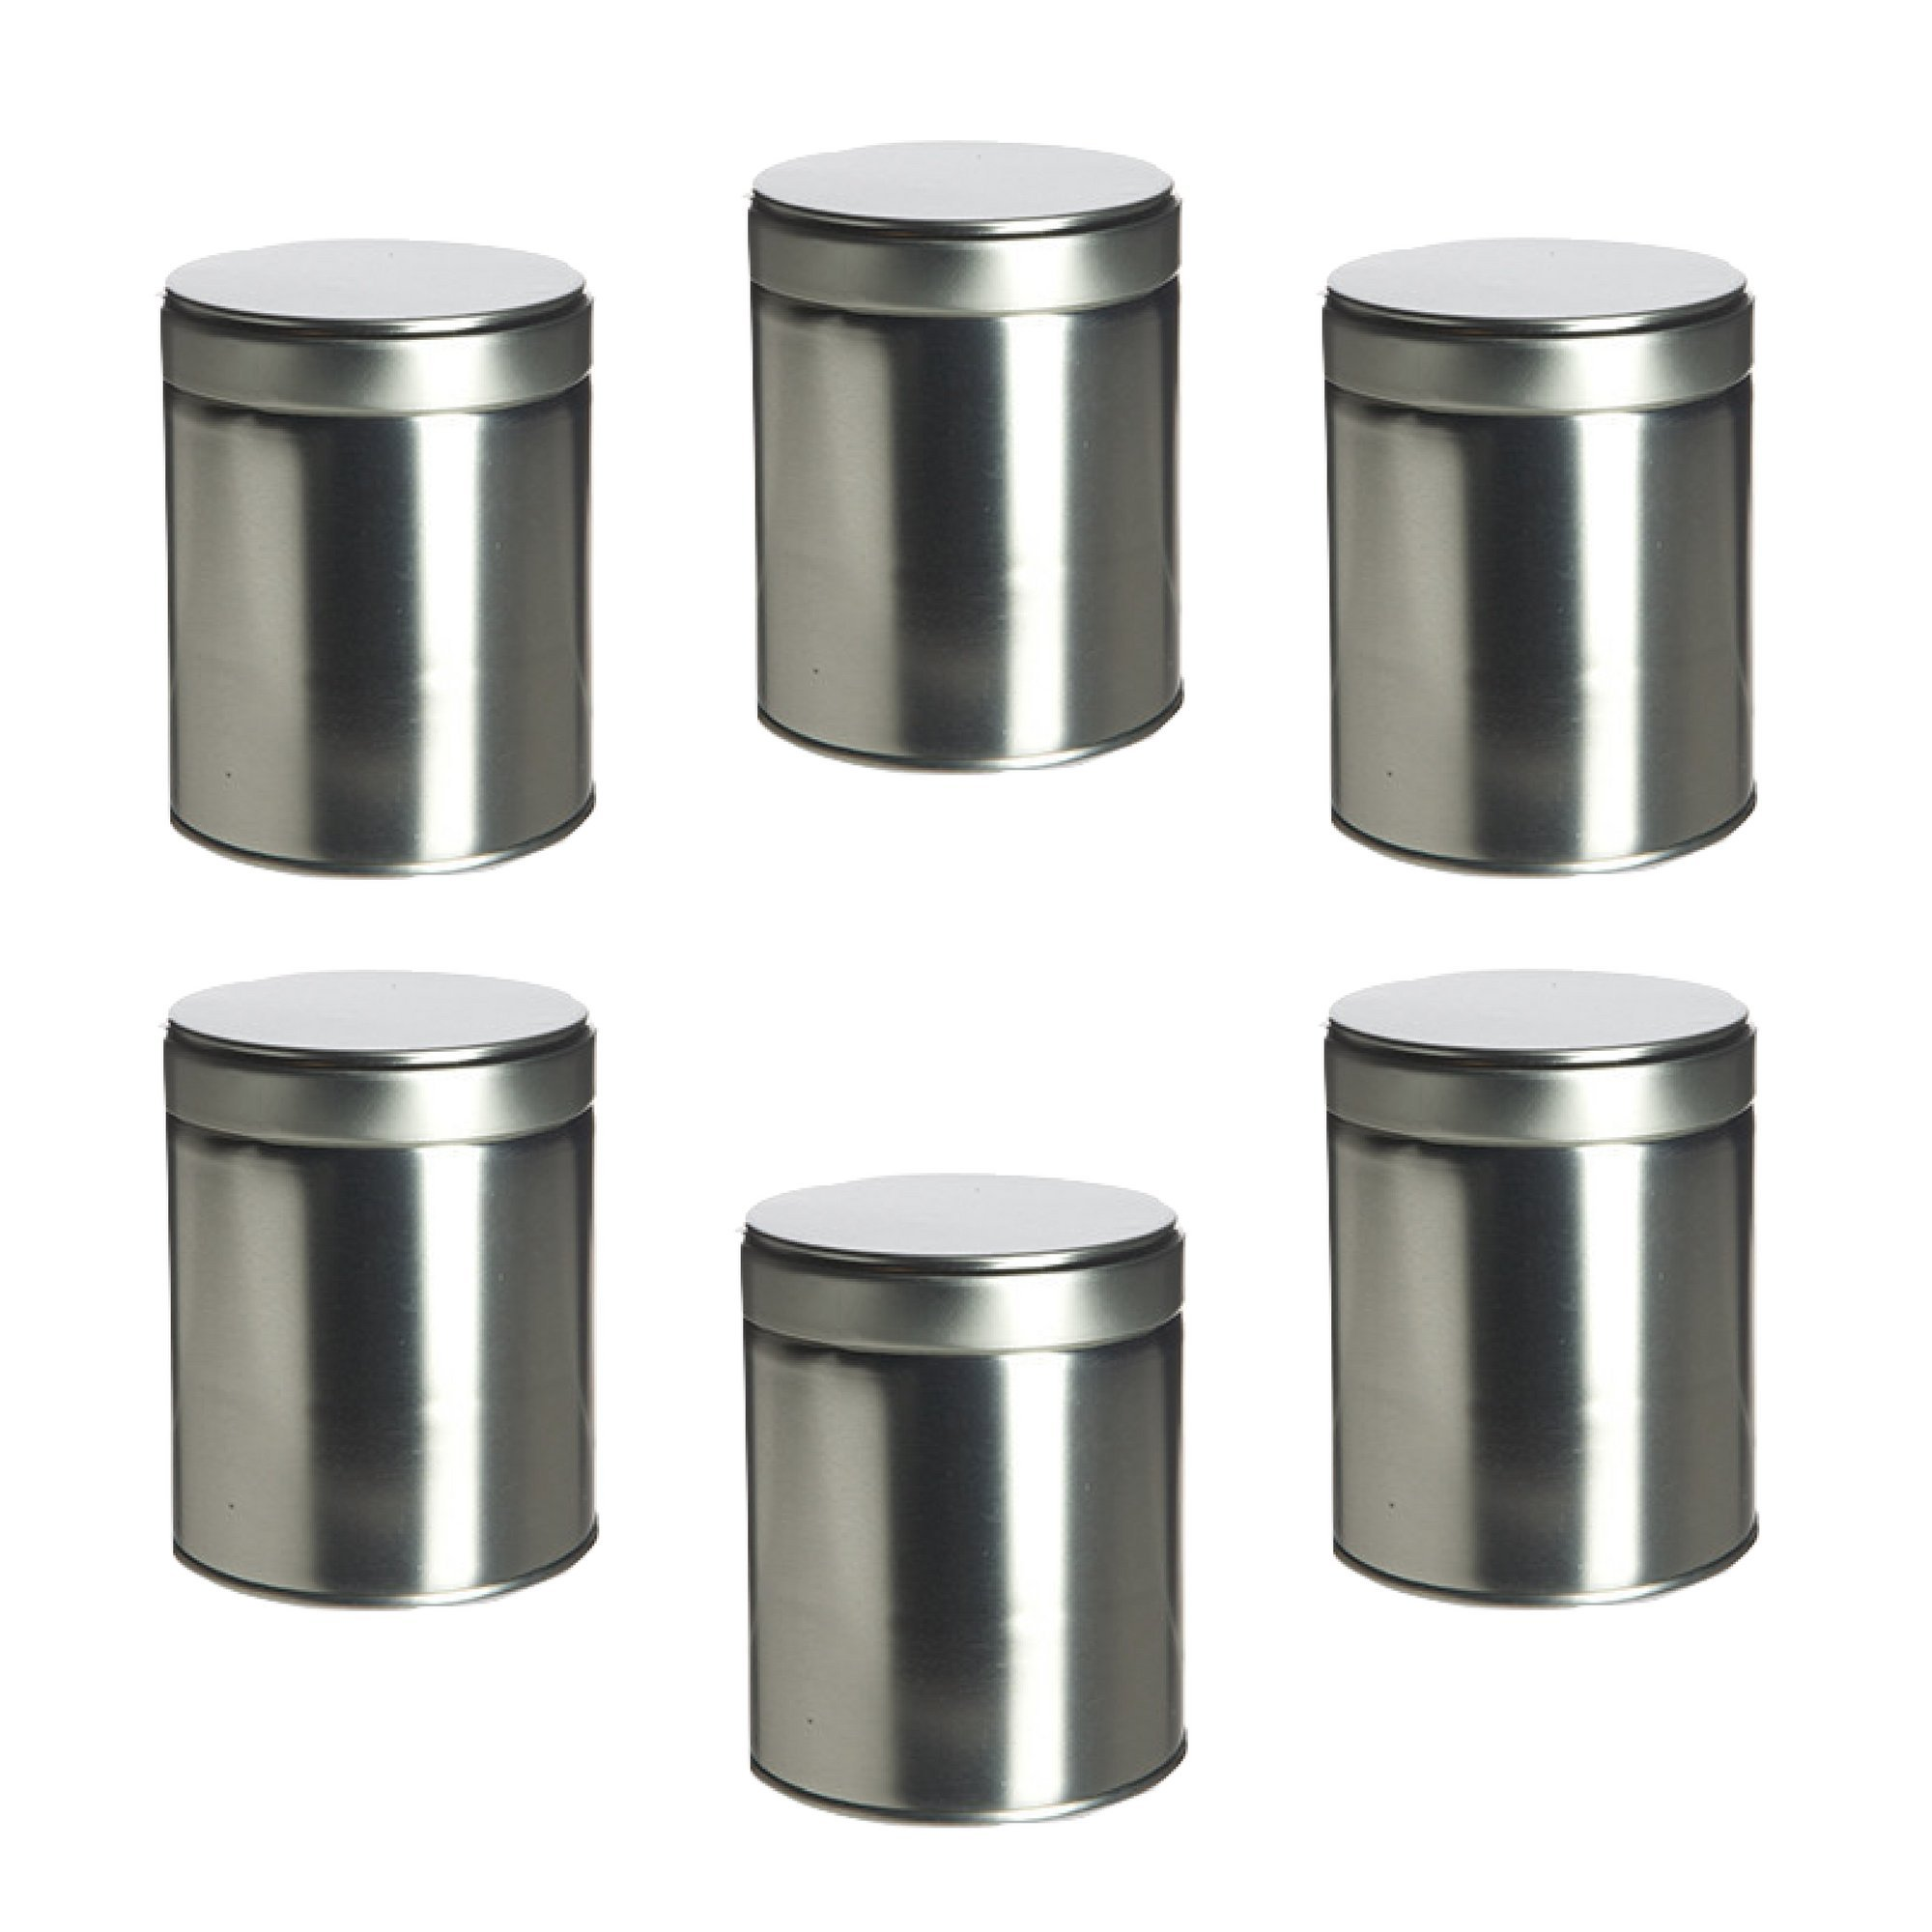 Thistle Moon Steel Loose Leaf Tea and Spice Tin Round with Twist Cover Short - Set of 6